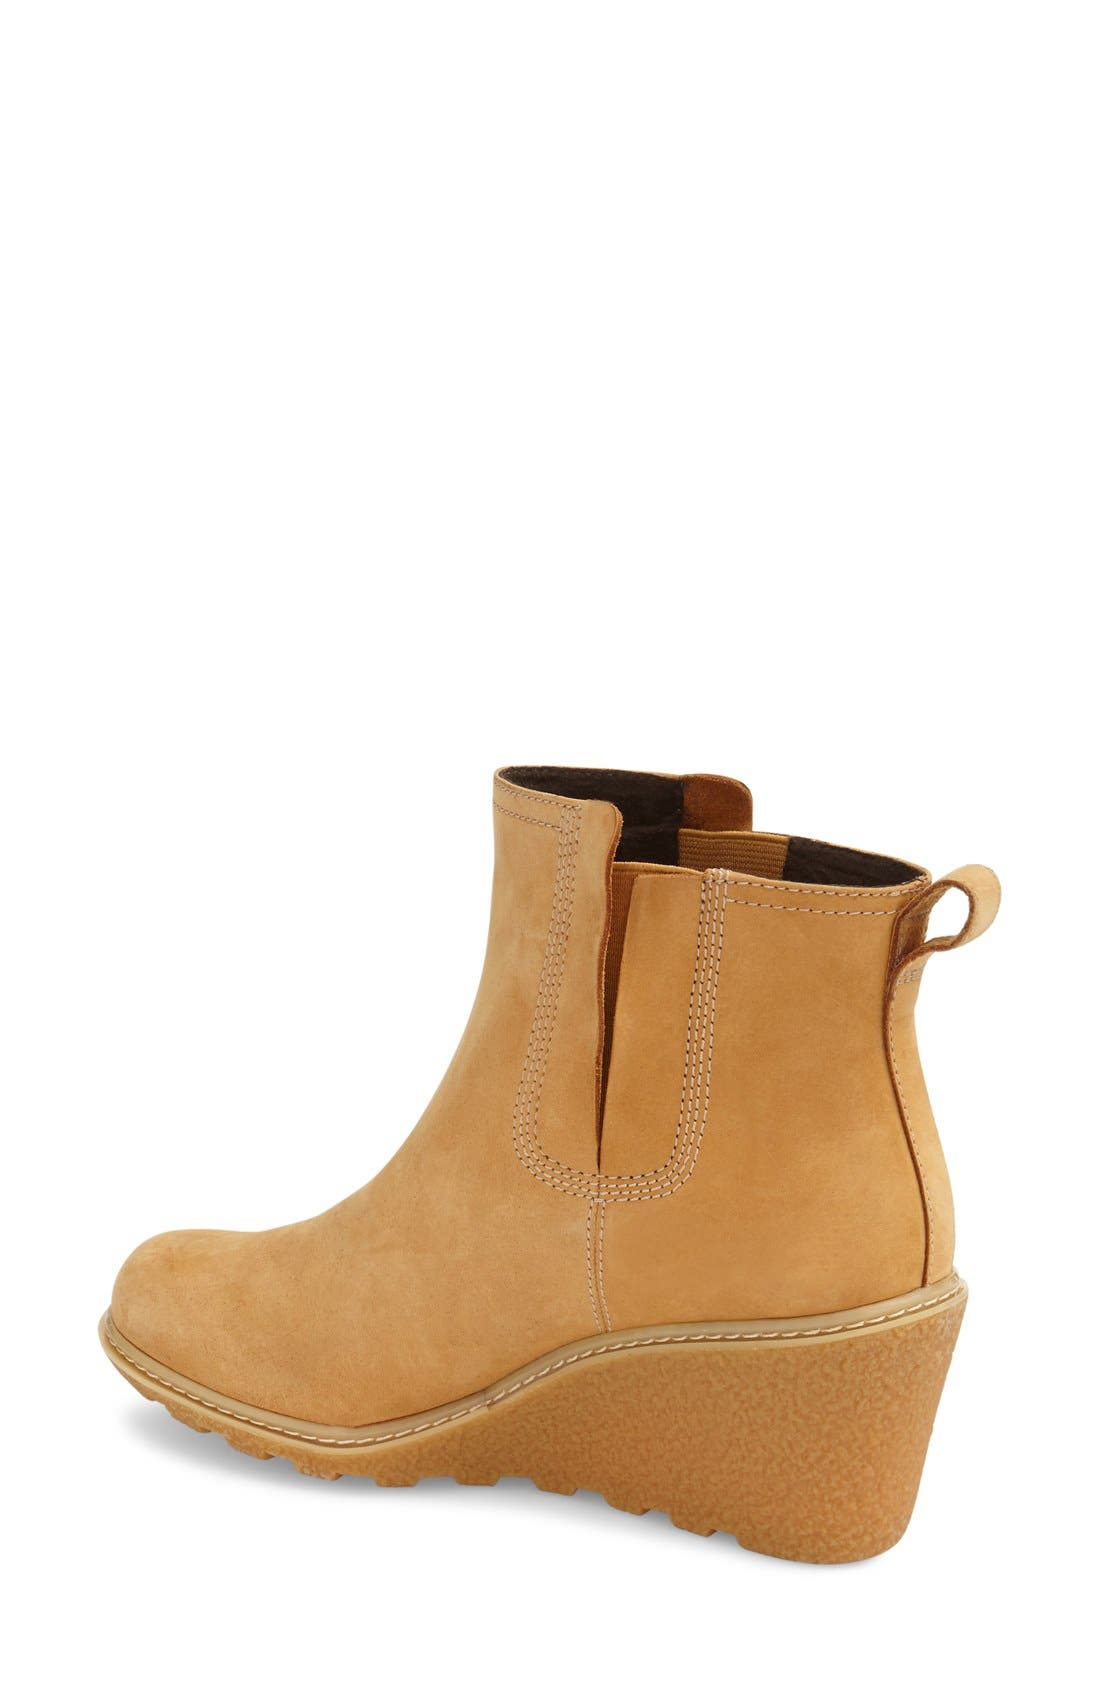 Alternate Image 2  - Timberland 'Amston' Chelsea Wedge Boot (Women)